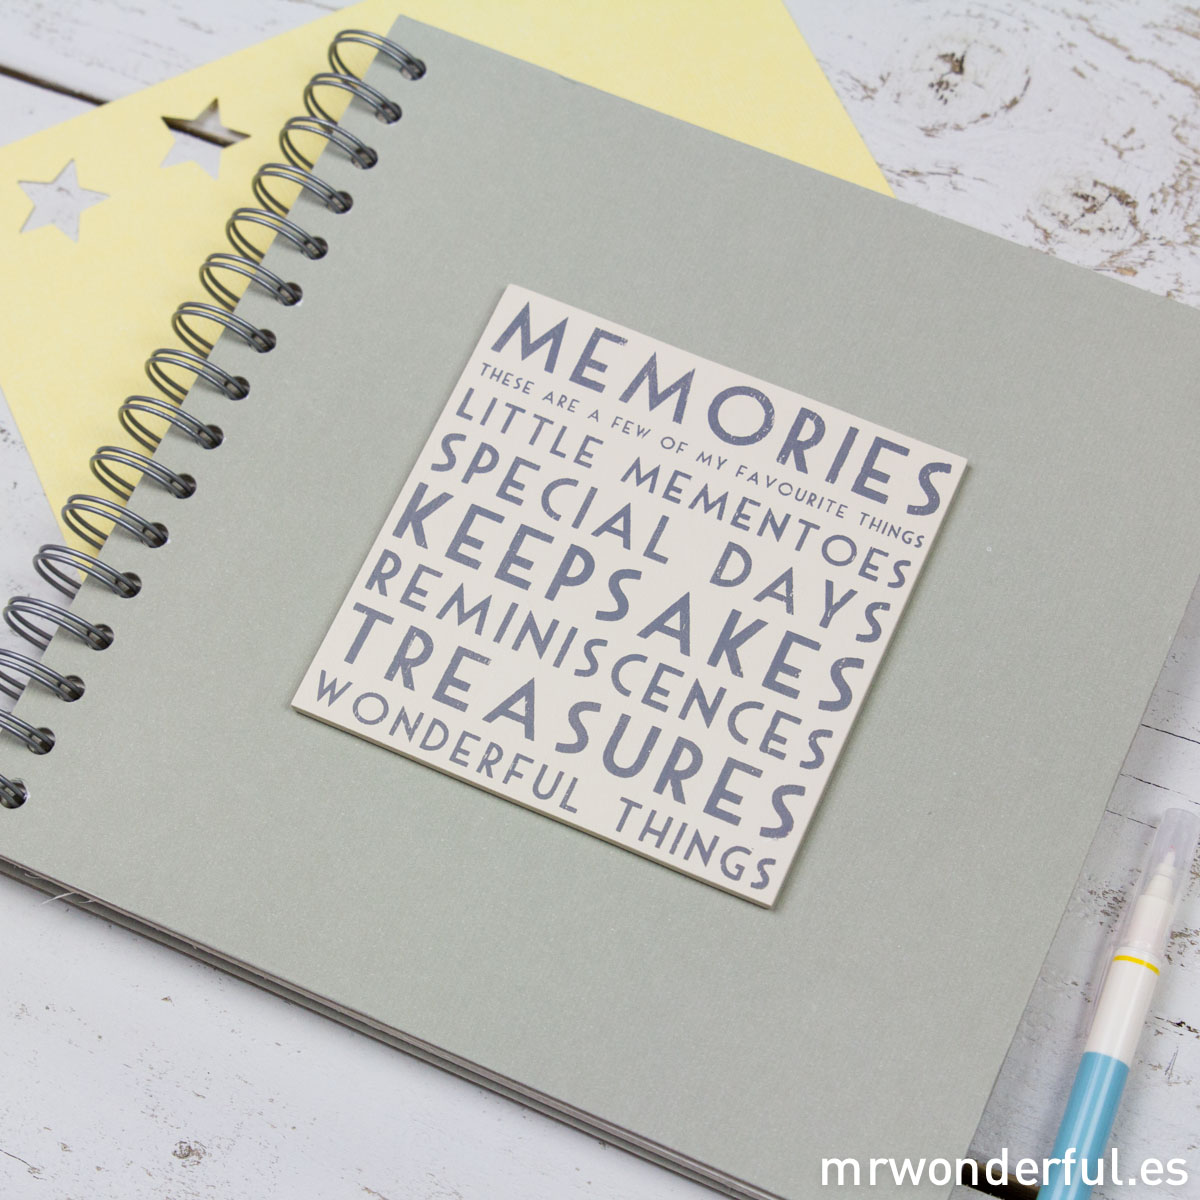 mrwonderful_1767_libro-firmas_memories-favourite-things-madera-4-2